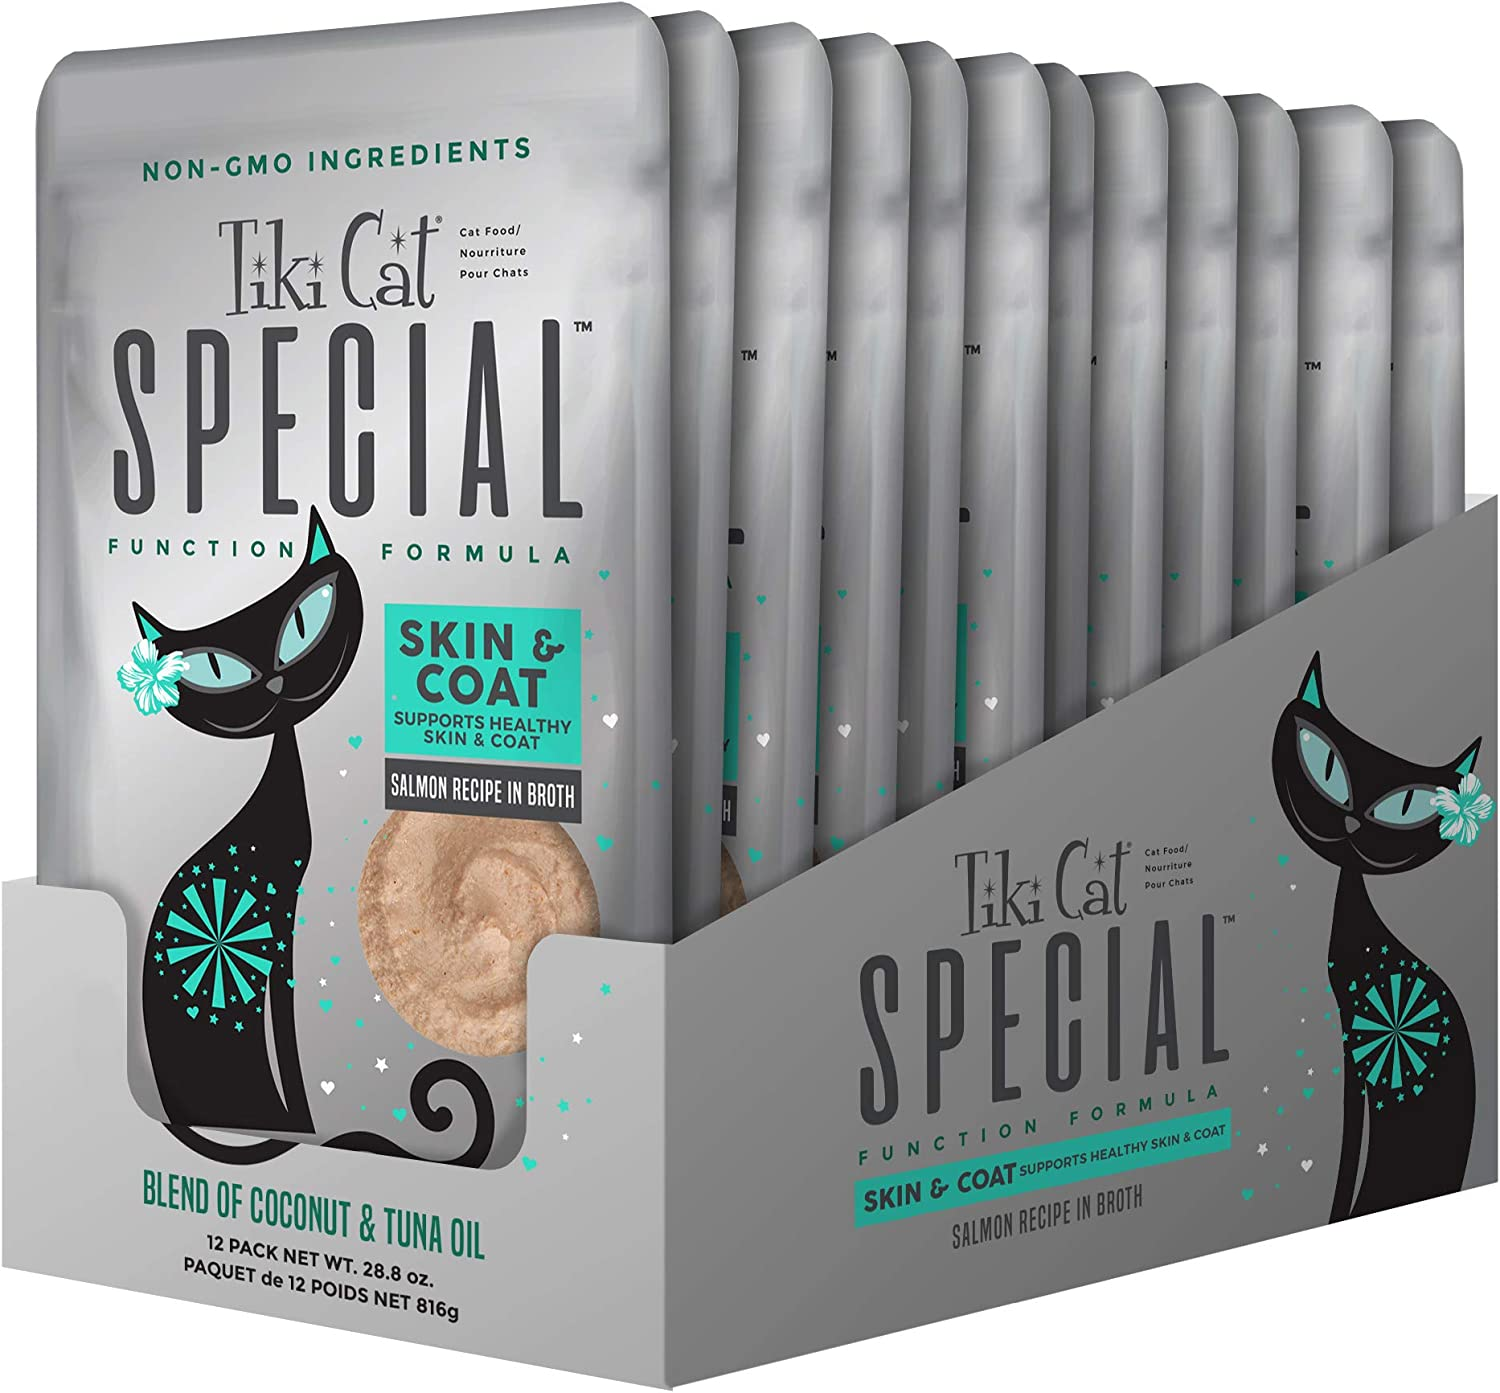 TIKI PETS Cat Special Mousse Wet Cat Food Function Formula Skin & Coat Salmon Recipe in Broth 12 Pouches, 2.4oz